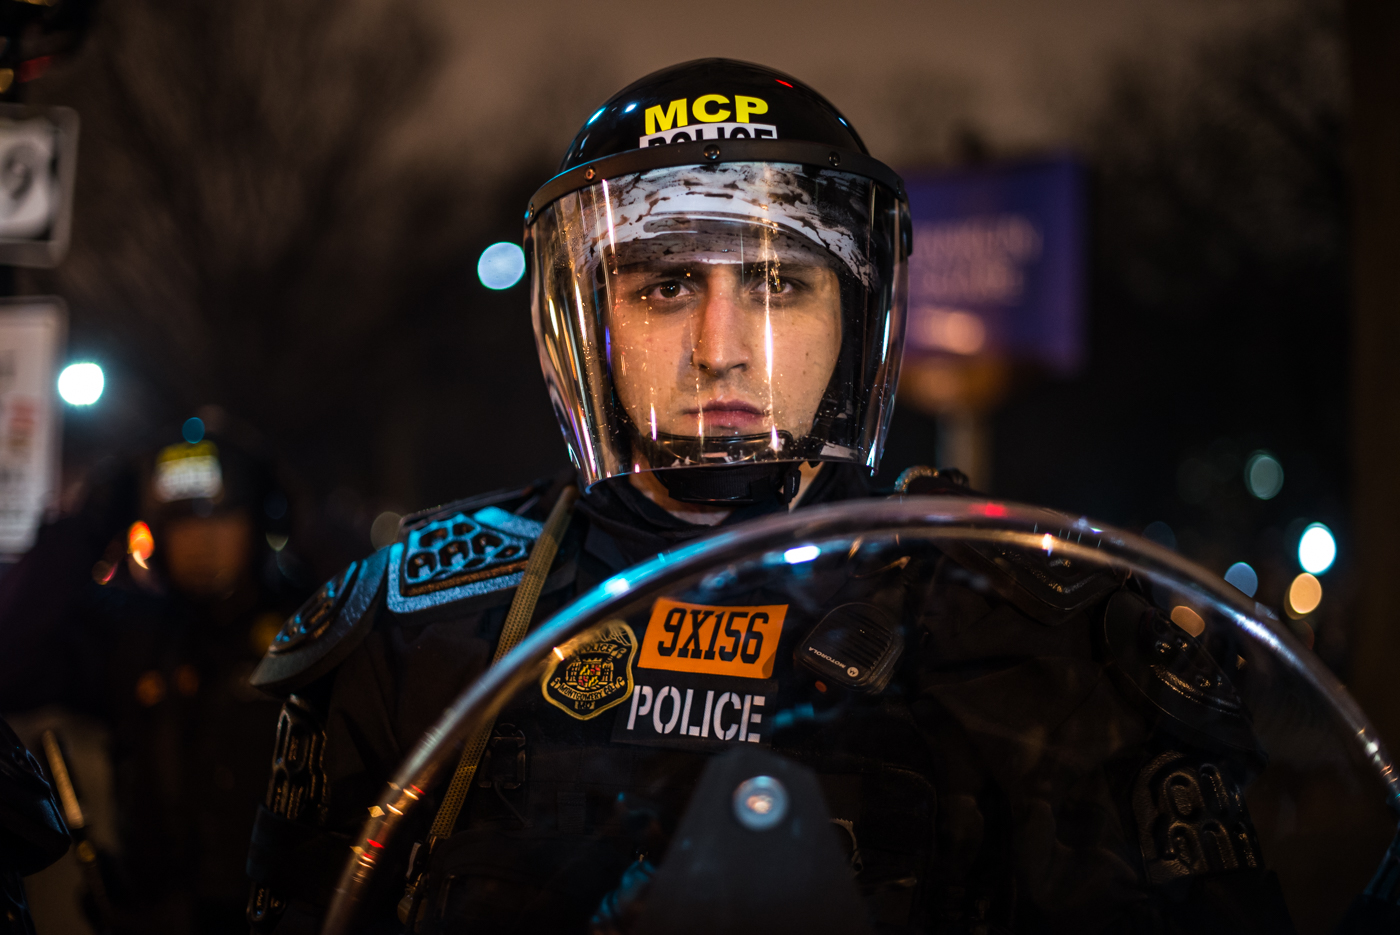 An officer stands behind his clear riot shield on Inauguration night.